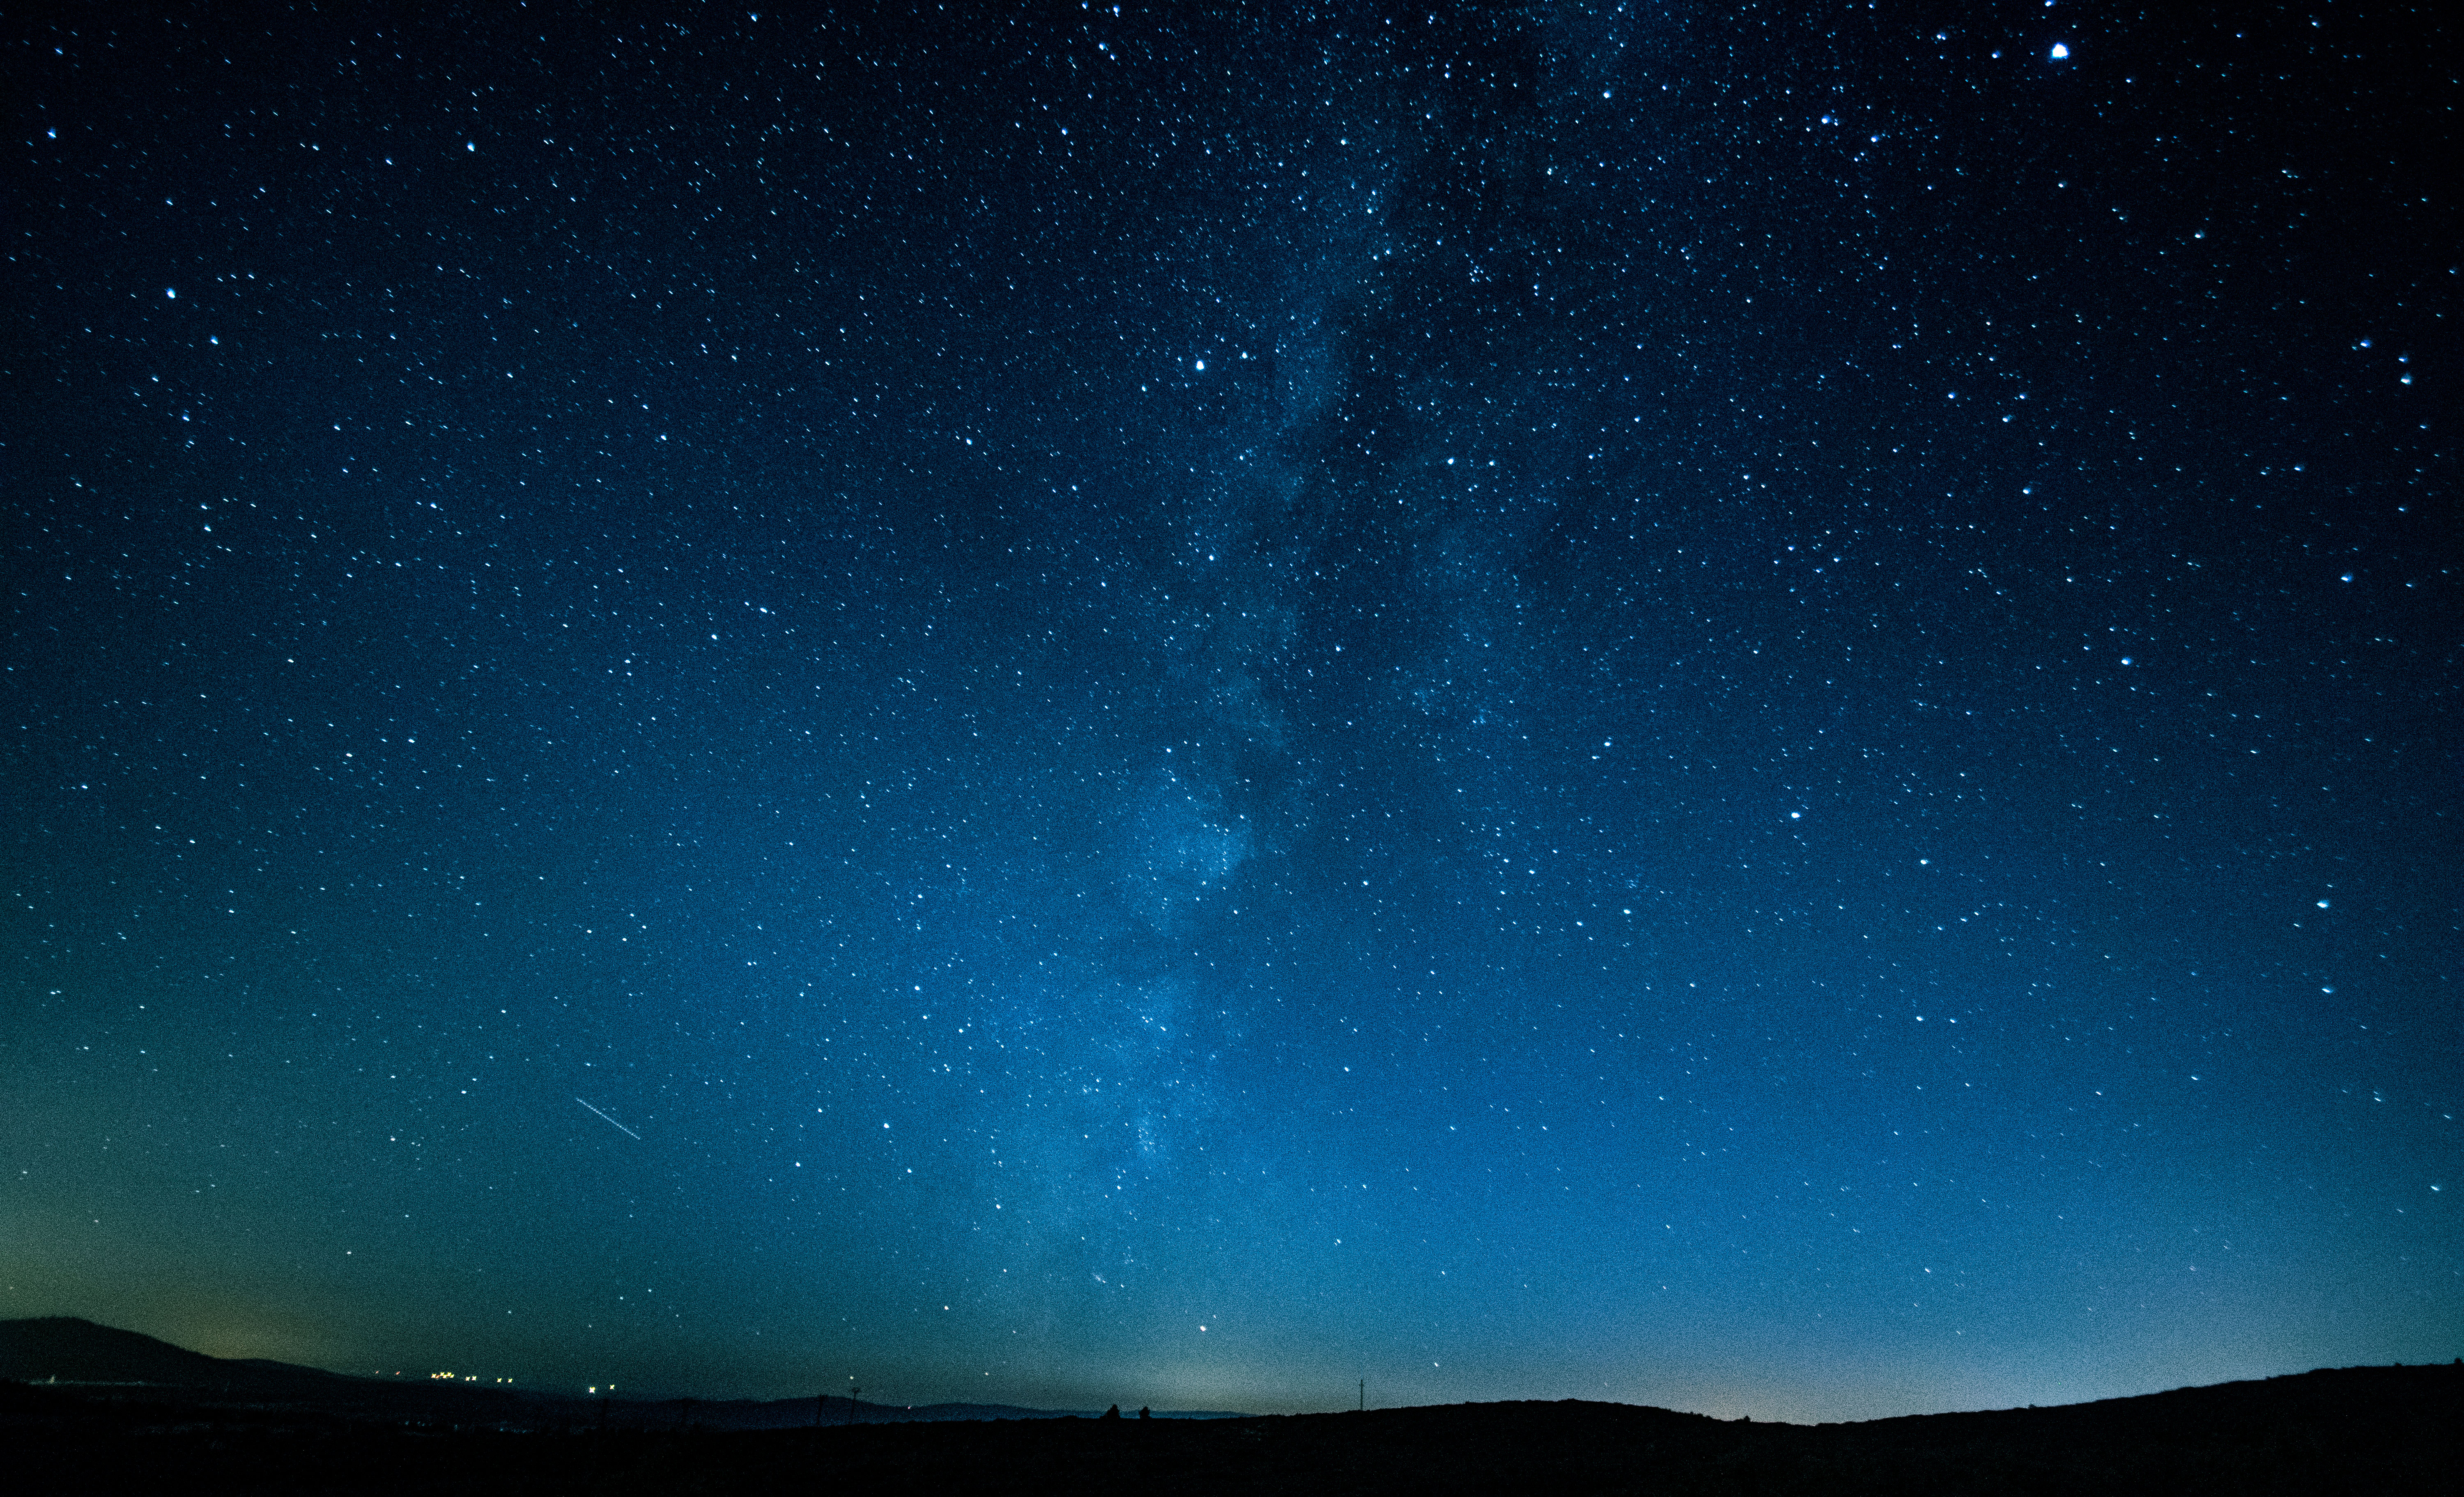 5120x2880 starry sky 5k hd 4k wallpapers images